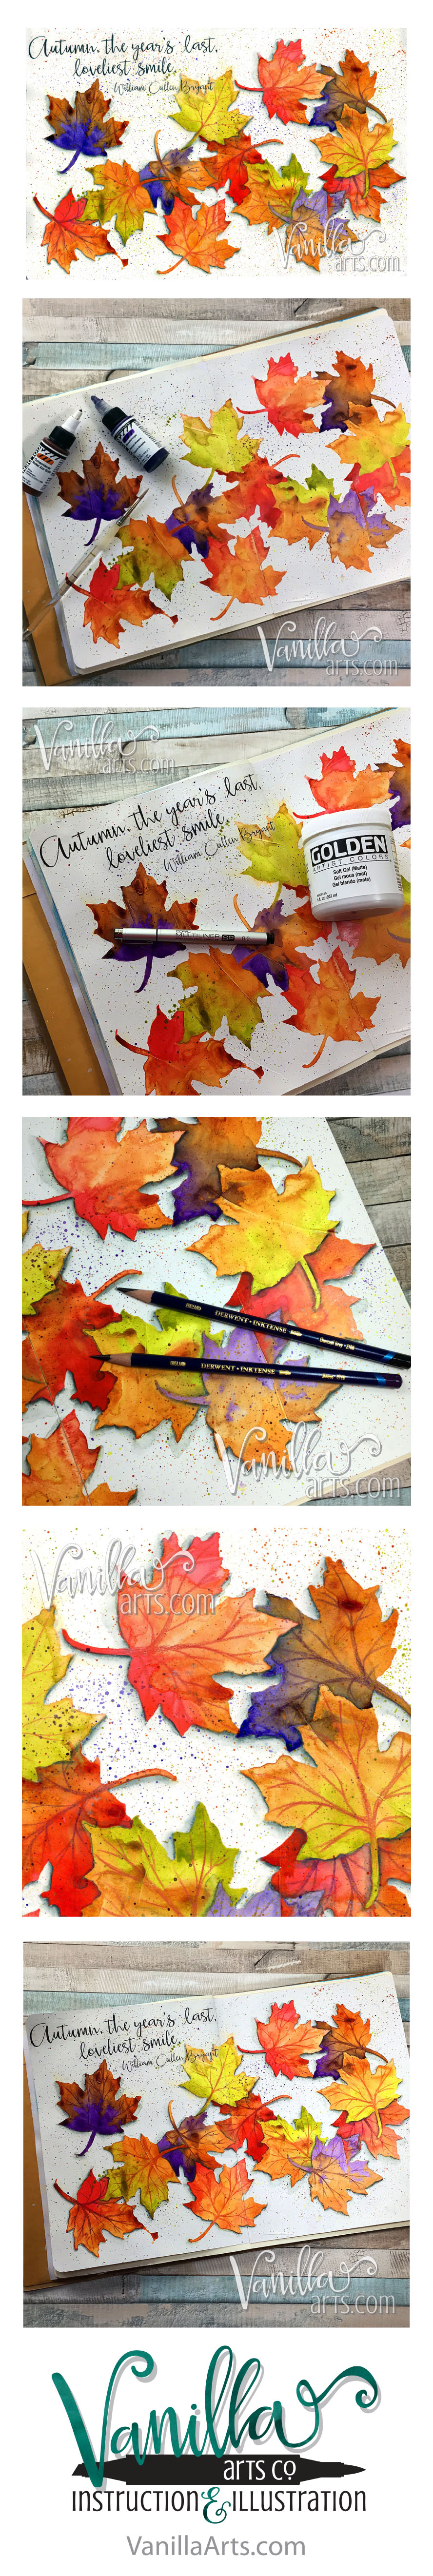 """Autumn Smile""- 12 Pages Class is expressive, kit-based art journaling lessons for papercrafters and Copic colorers. 